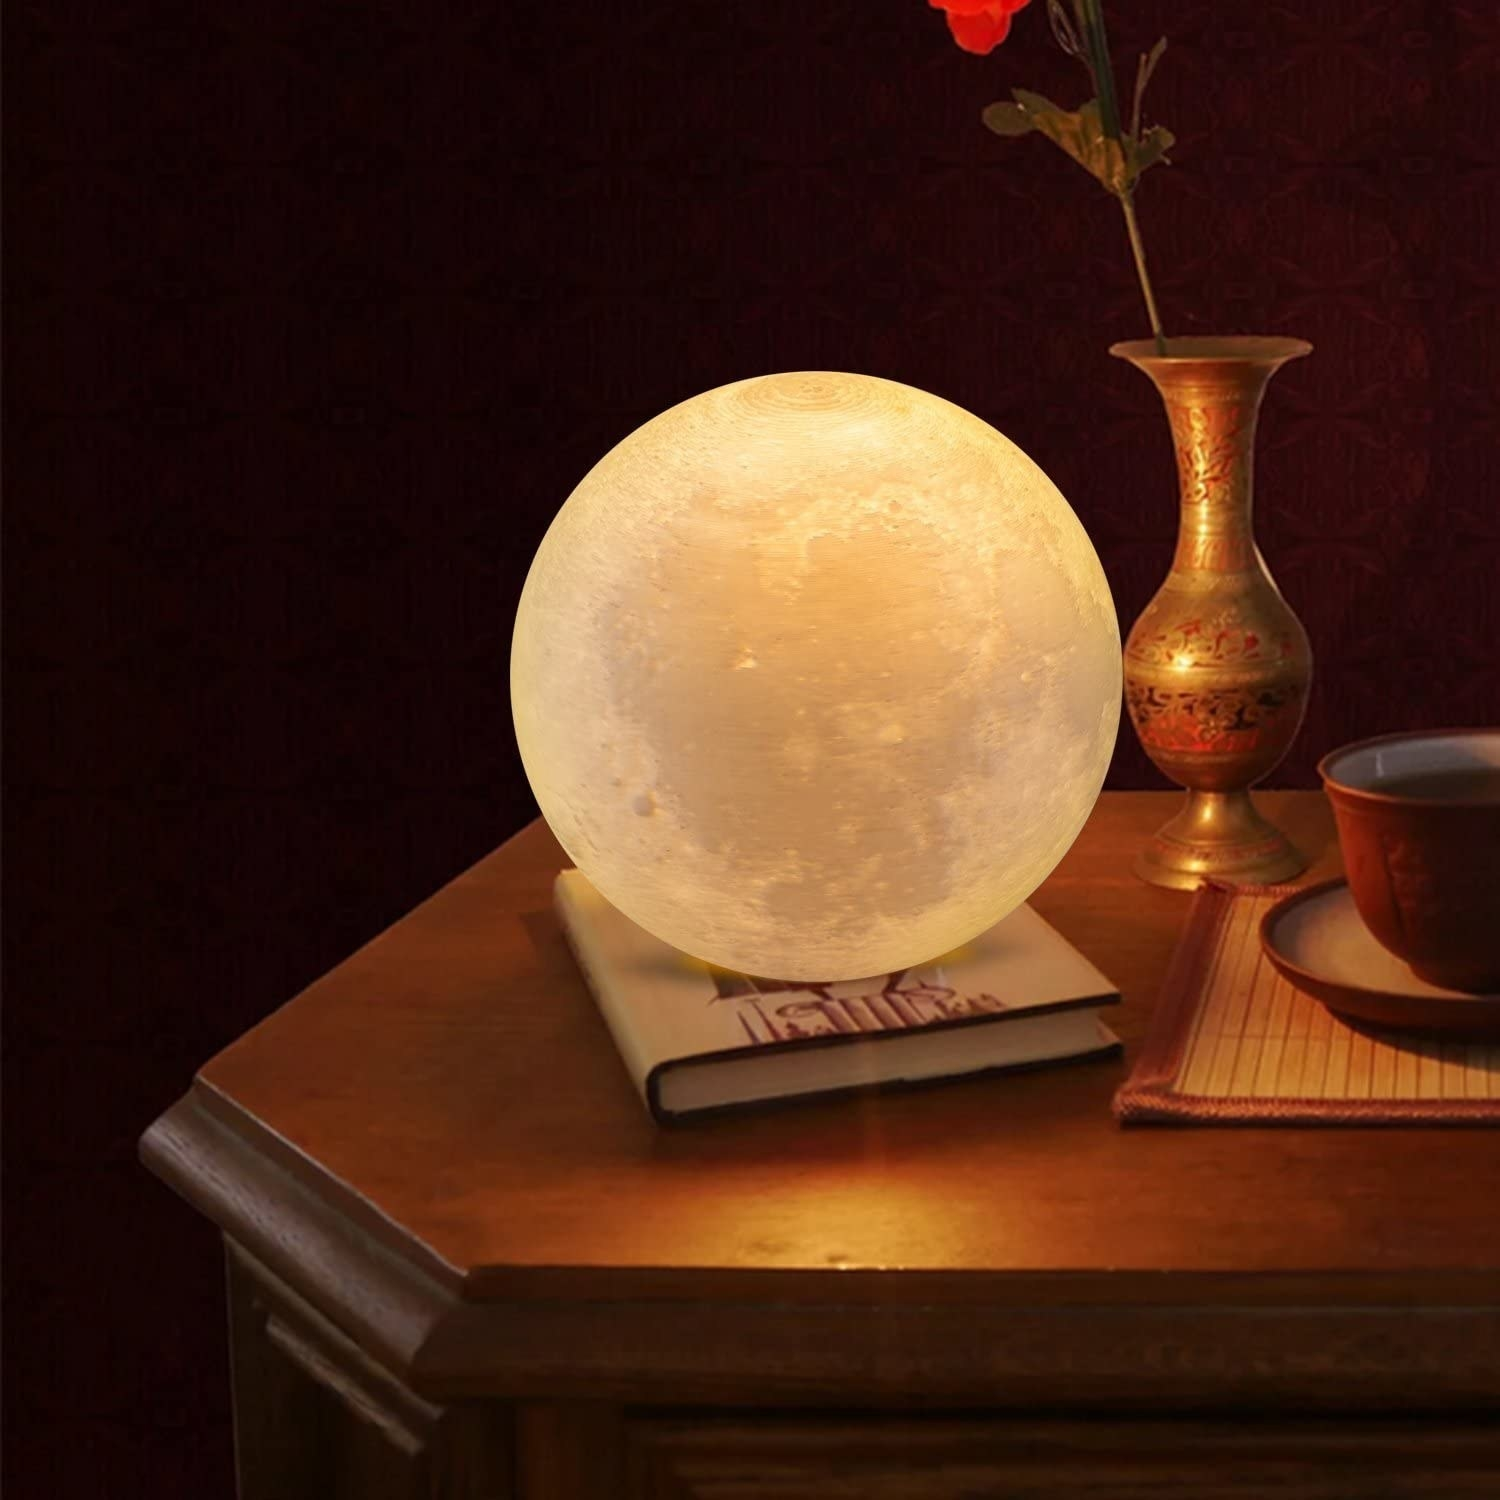 The moon-shaped lamp on a night stand in a dark room